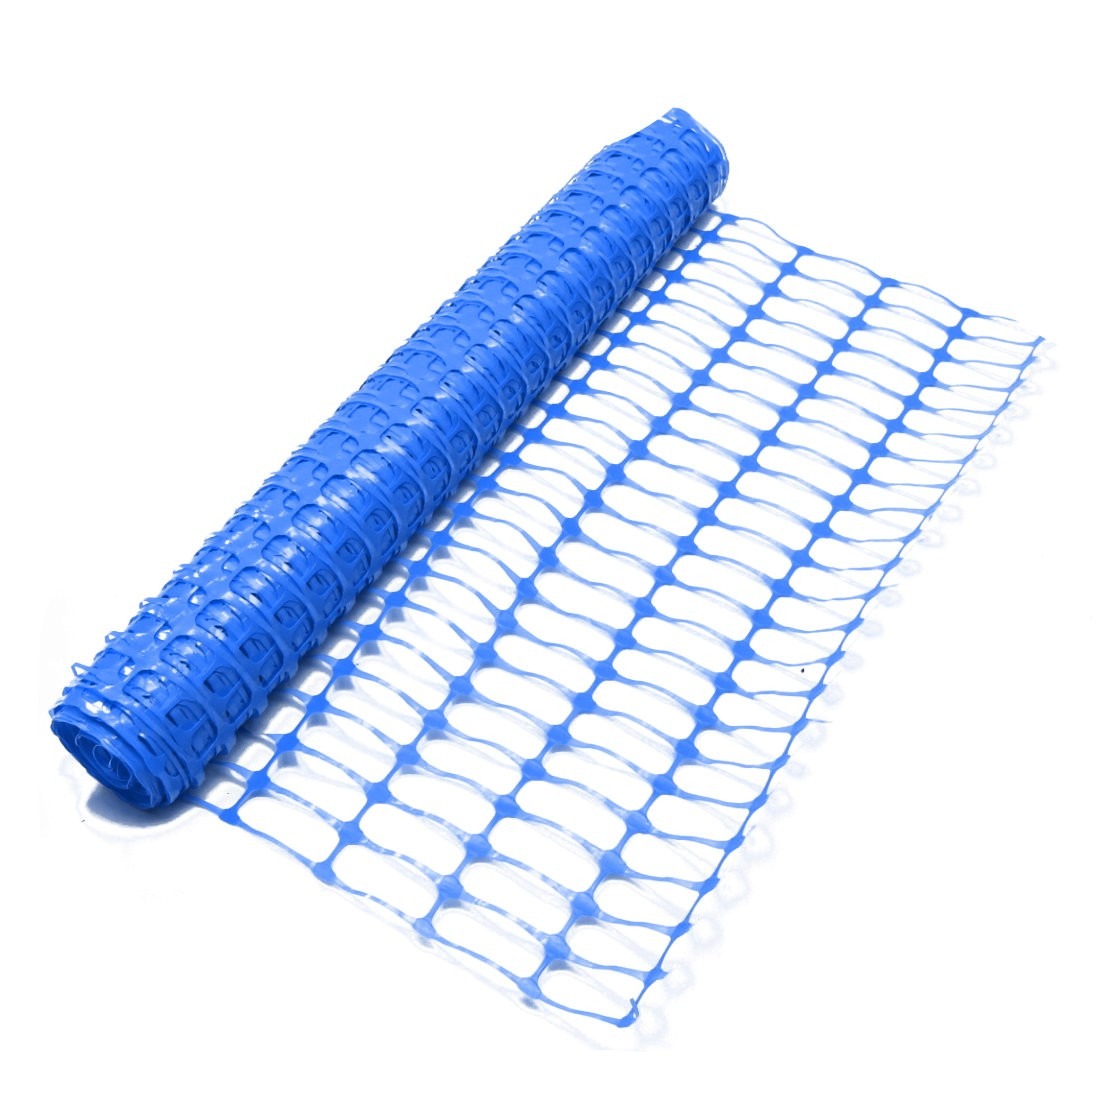 Blue Barrier Mesh Fence